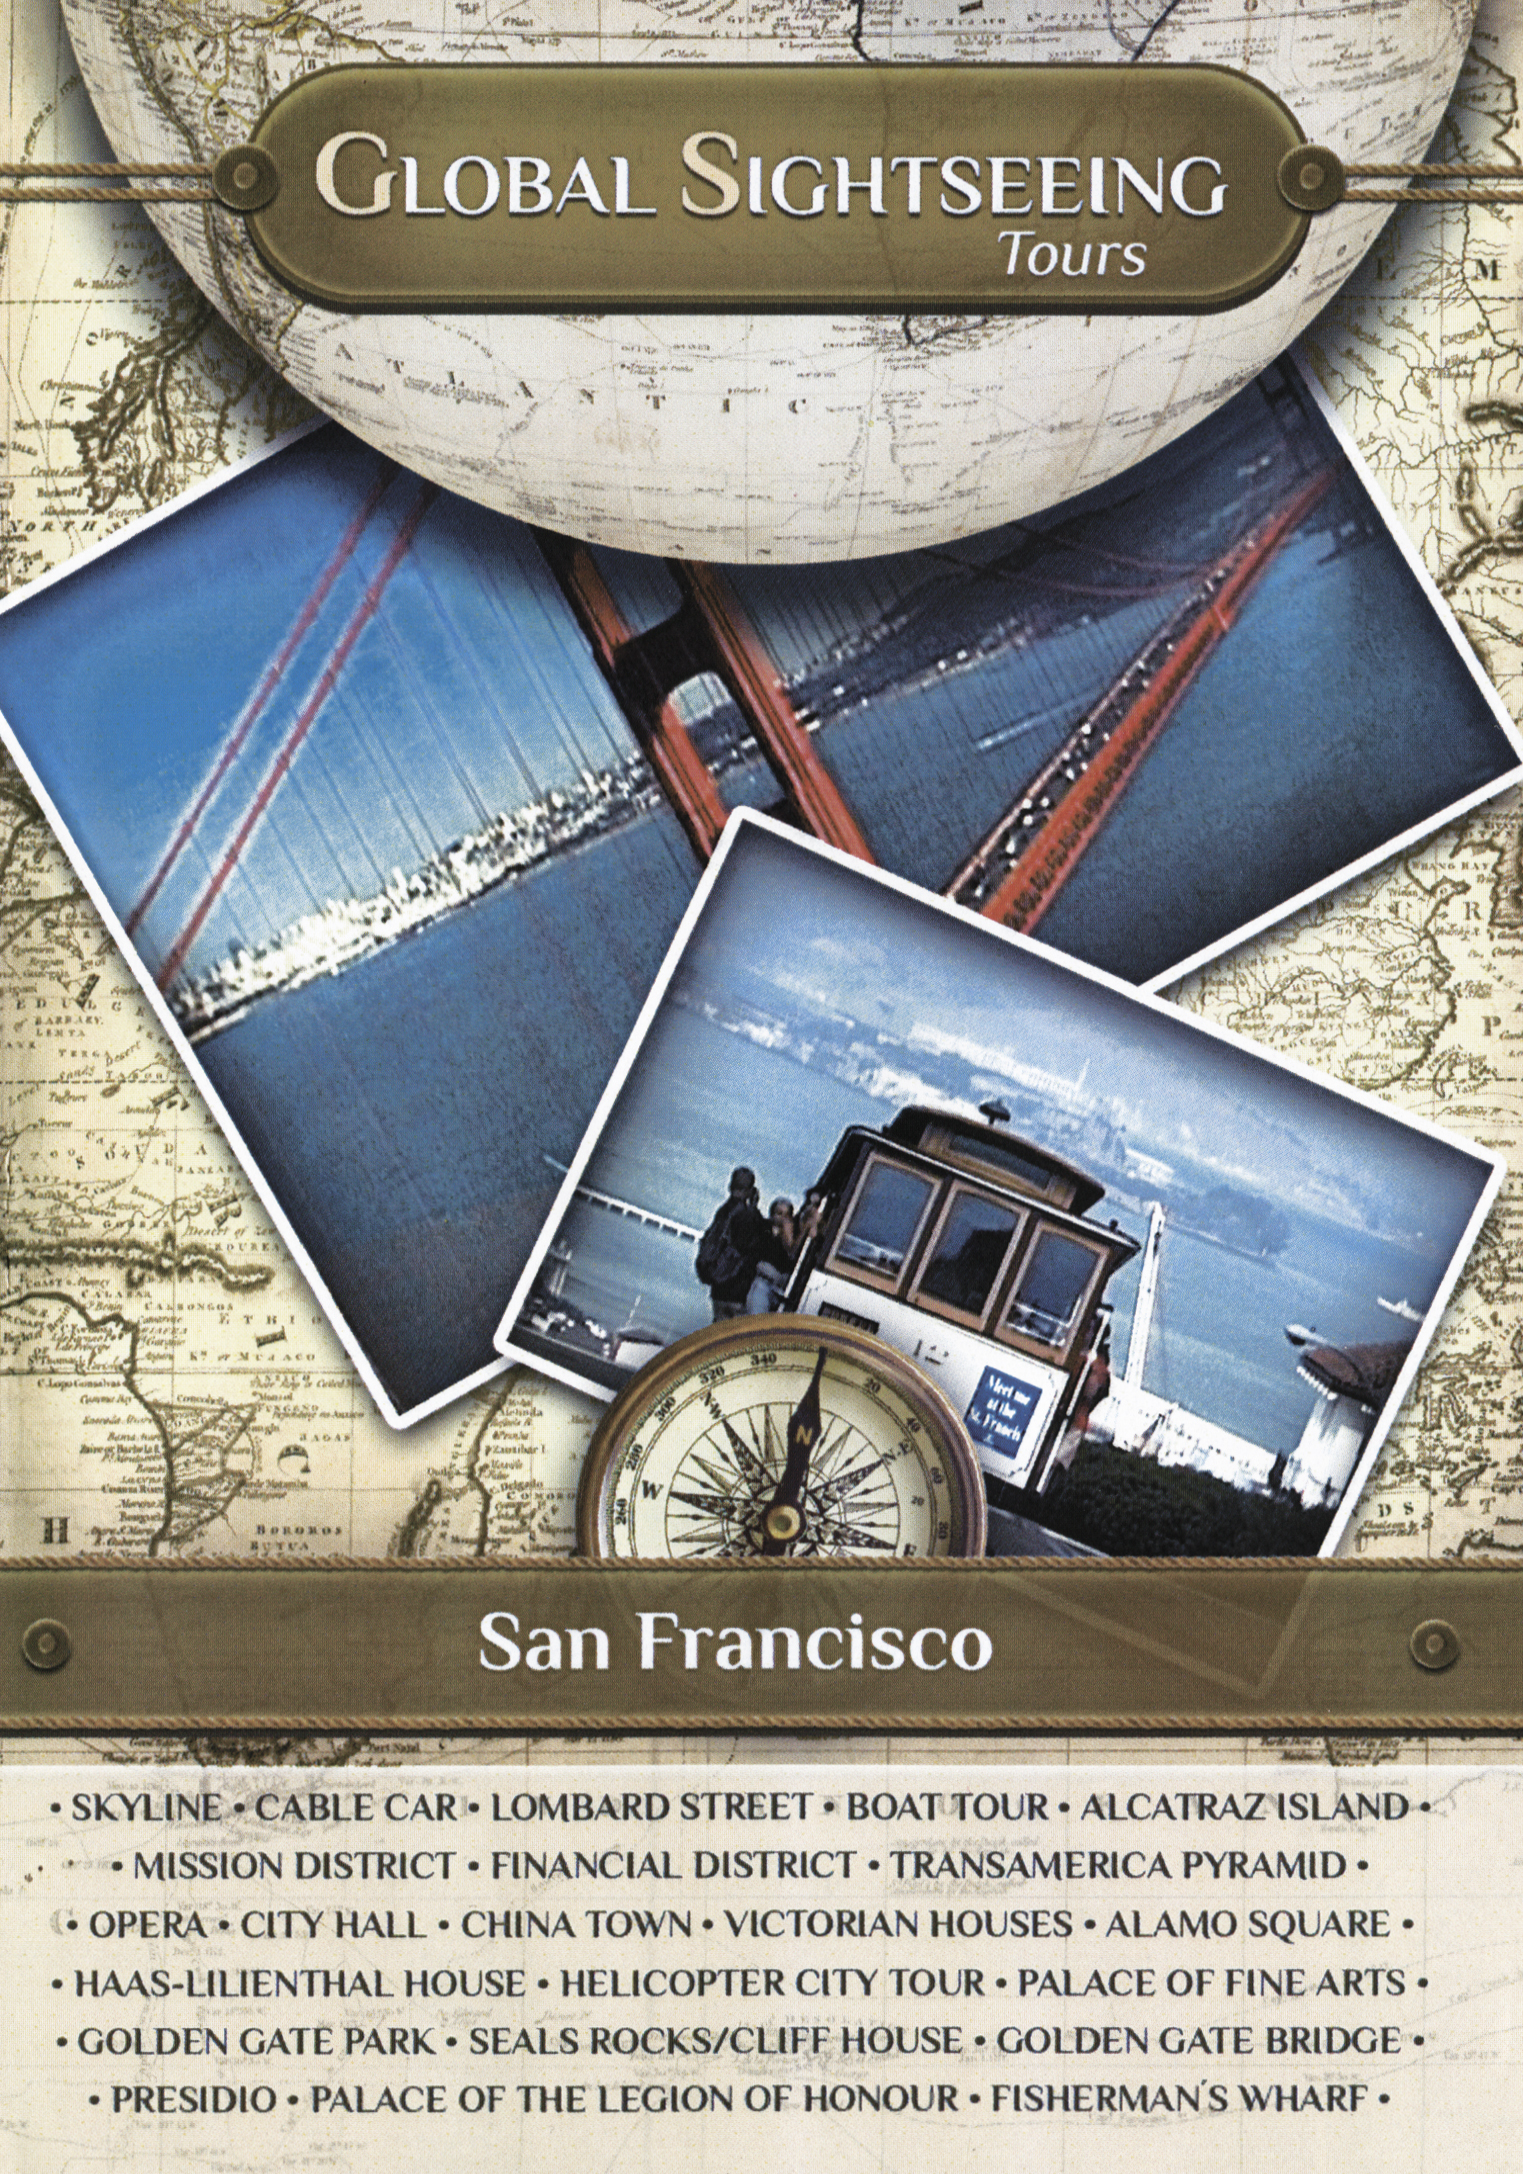 Global Sightseeing Tours: San Francisco